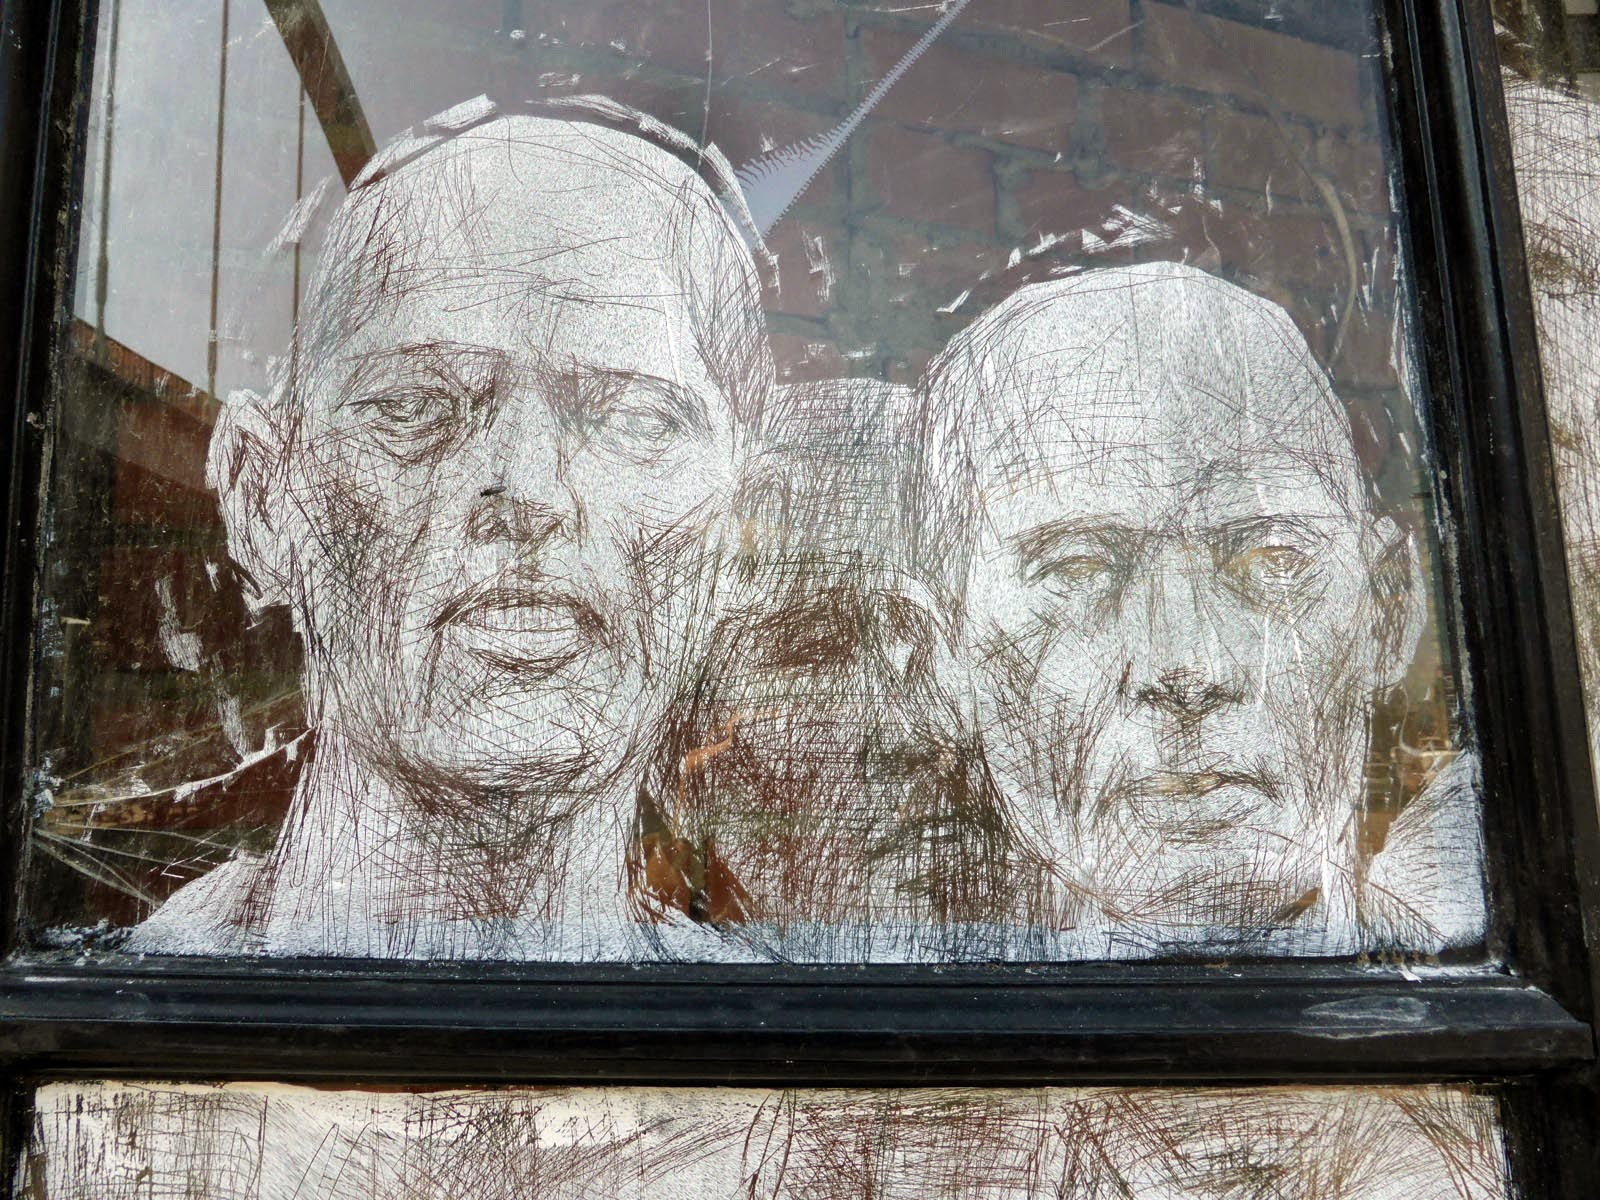 borondo-new-piece-in-shoreditch-london-05